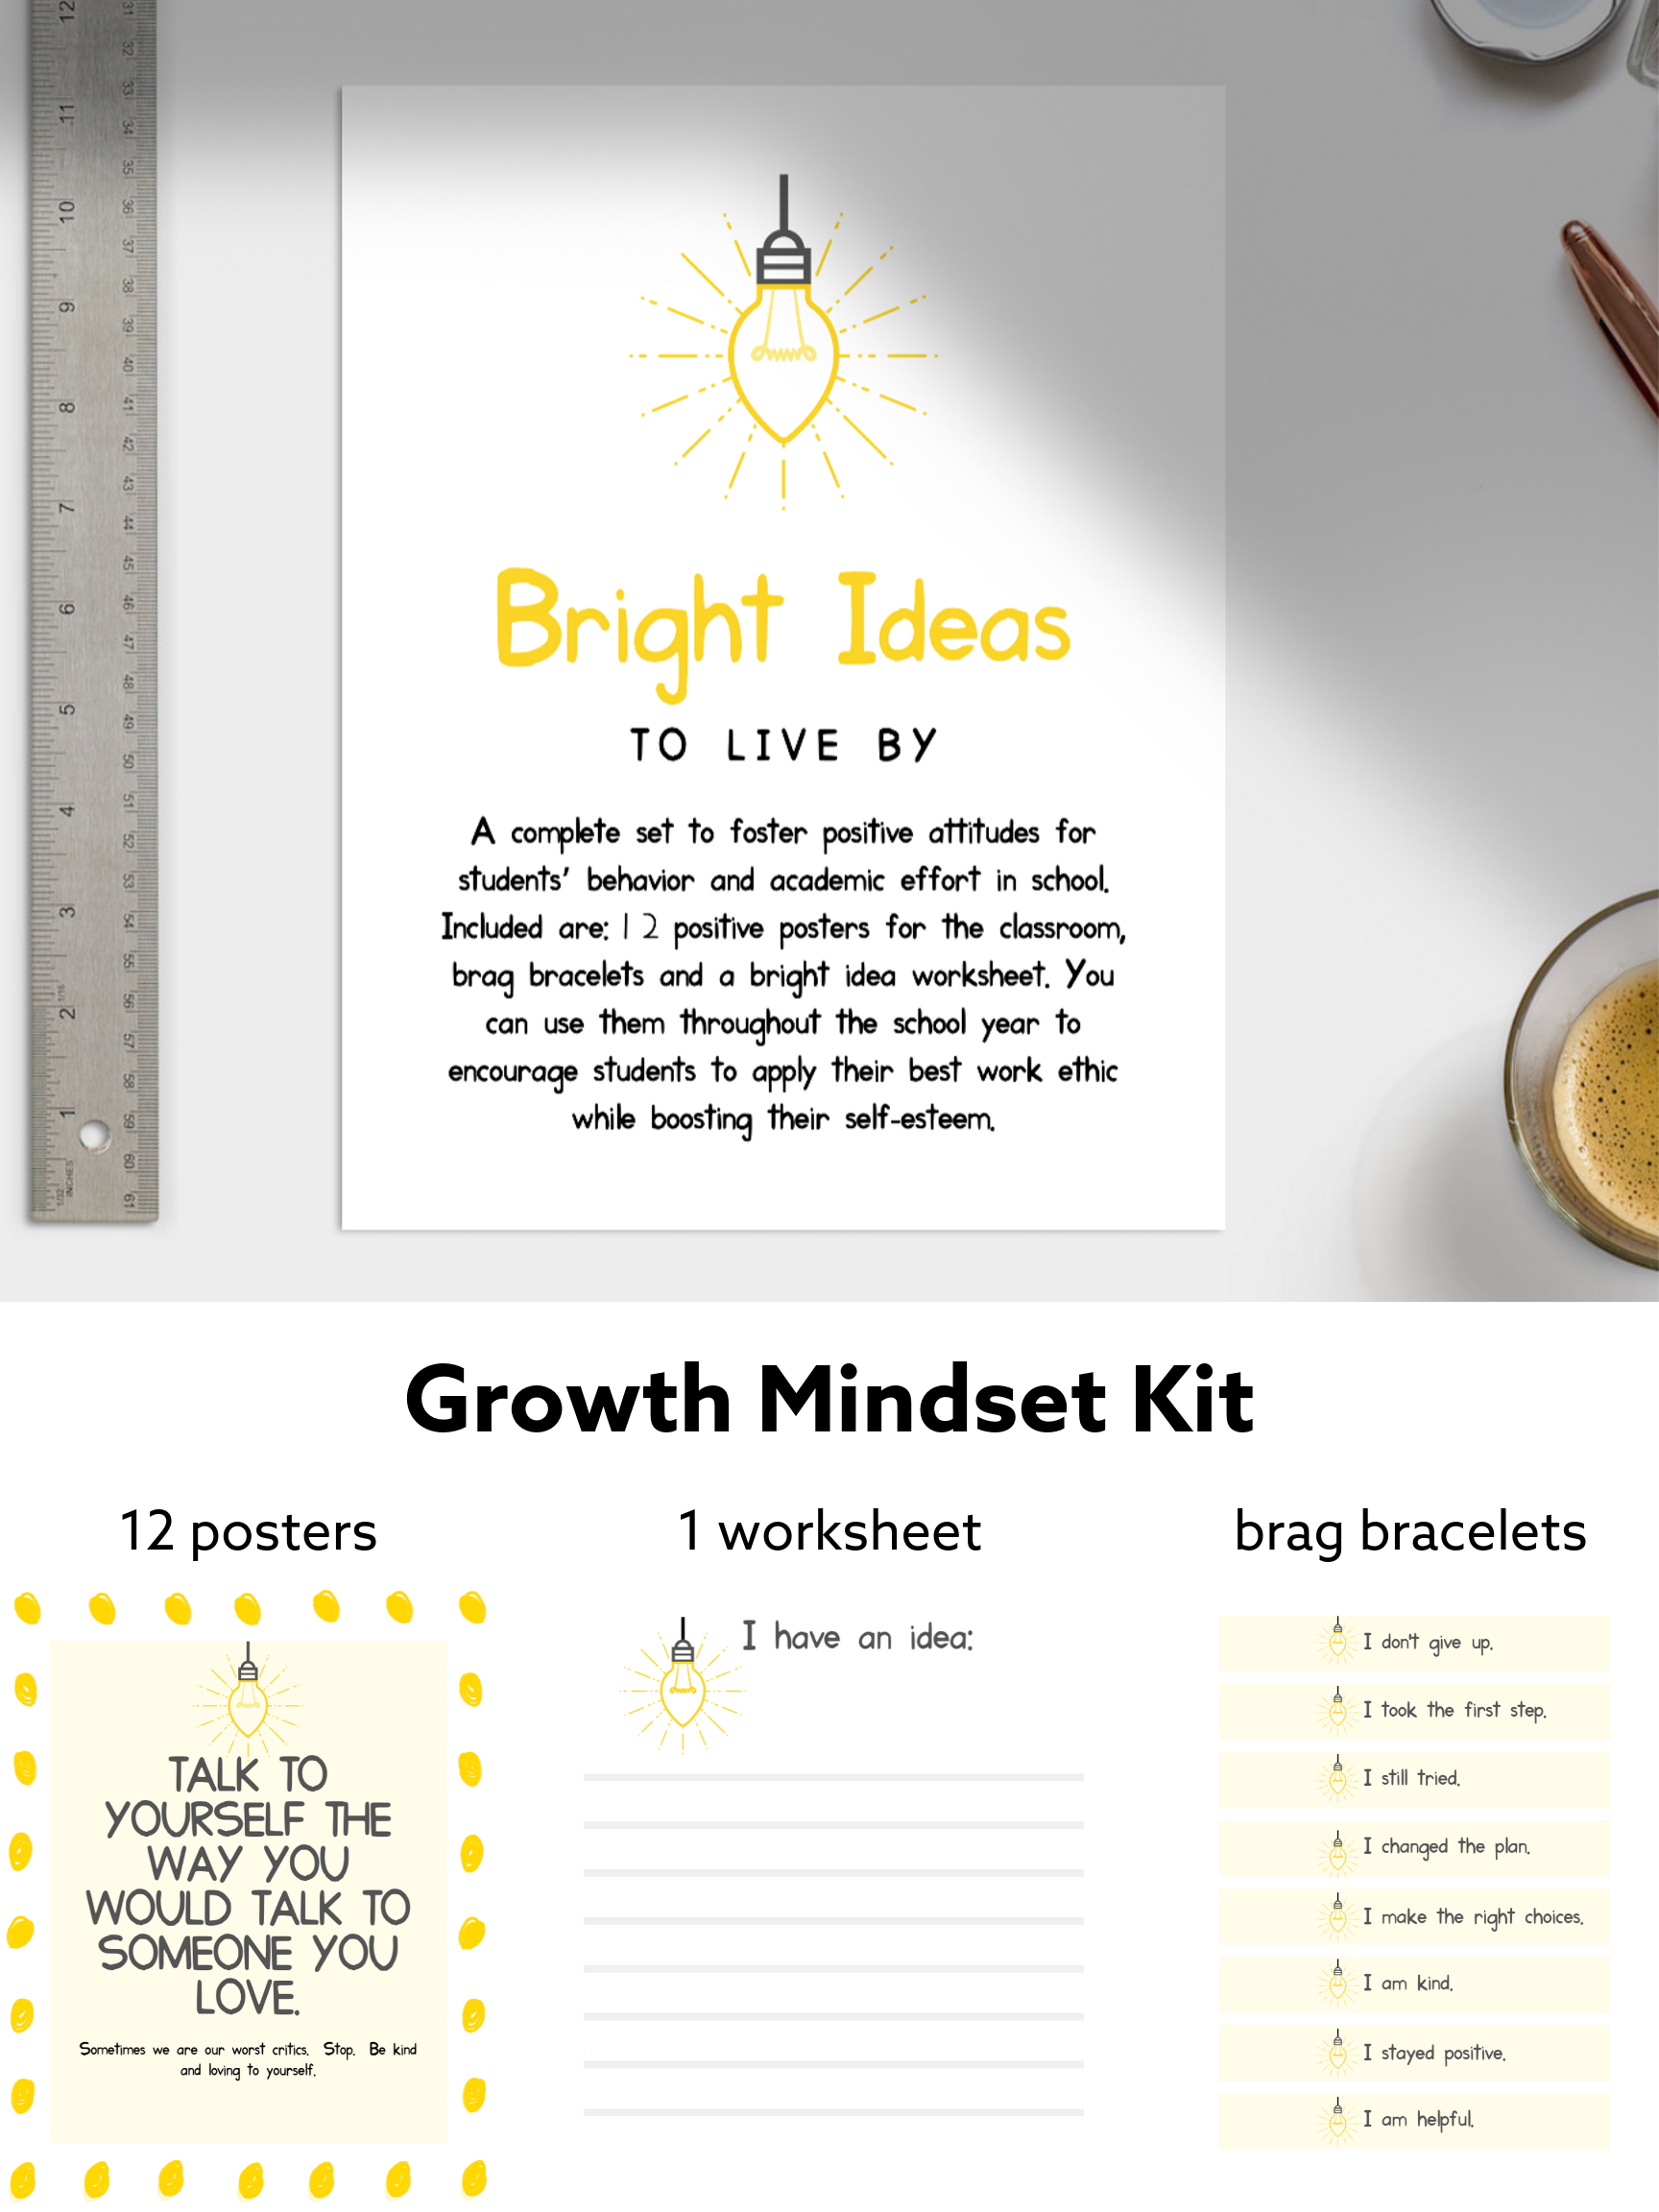 Bright Ideas Growth Mindset